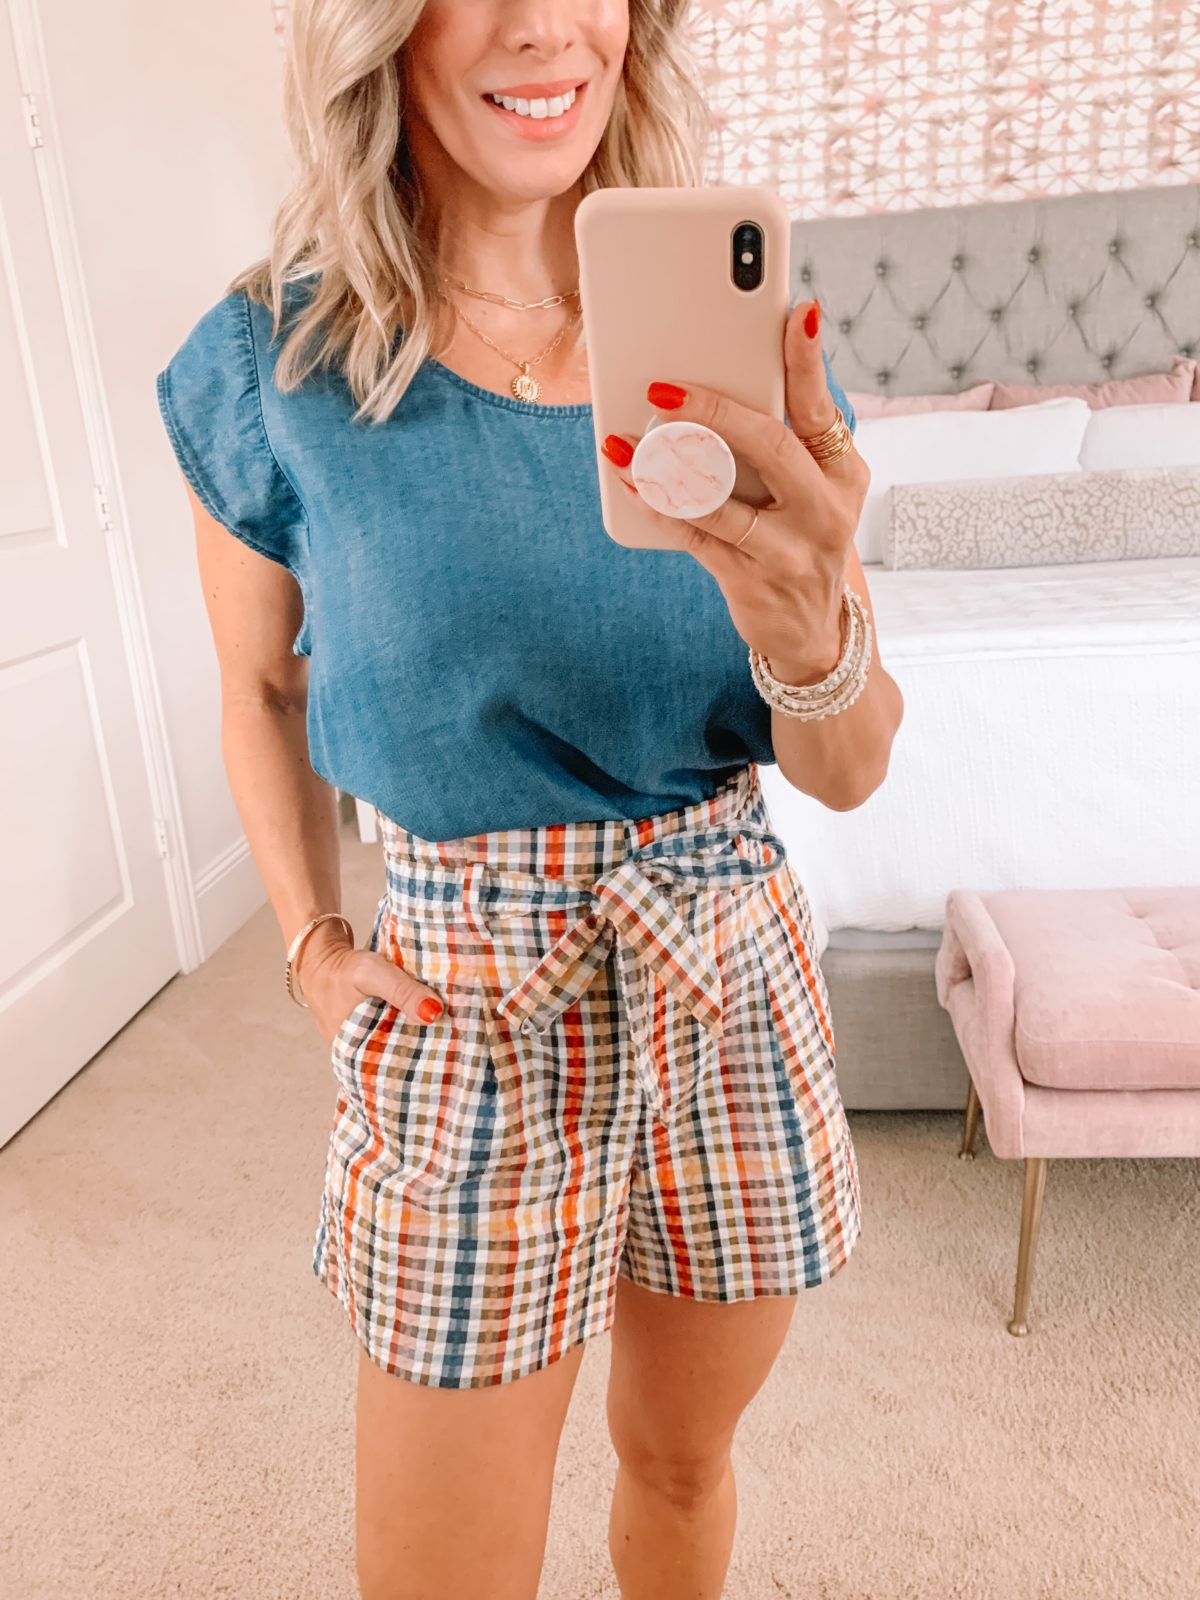 Dressing Room Finds LOFT Chambray Top and Plaid shorts, Studded Sandals